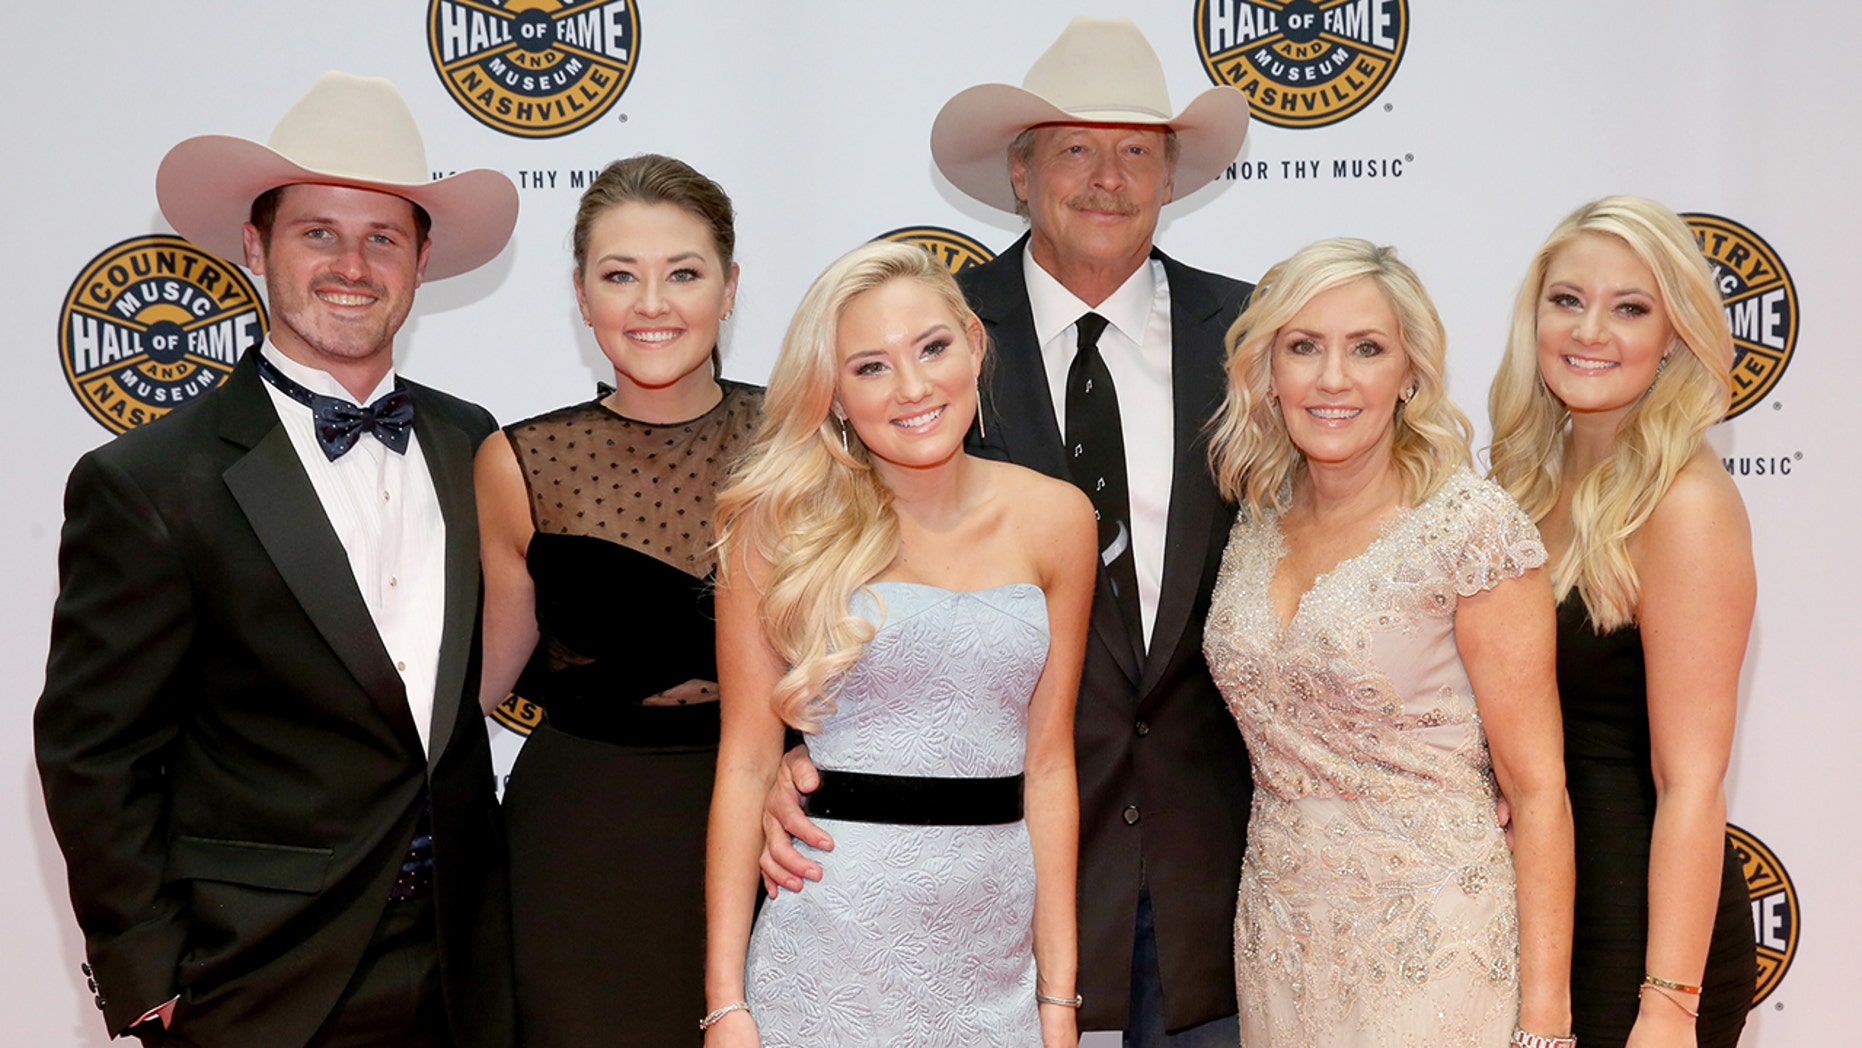 Alan Jackson is mourning the death of his son-in-law Ben Selecman after his sudden death. Here, Jackson stands with his family members Ben Selecman, Mattie Jackson, Dani Jackson, Denise Jackson, and Alexandra Jackson.